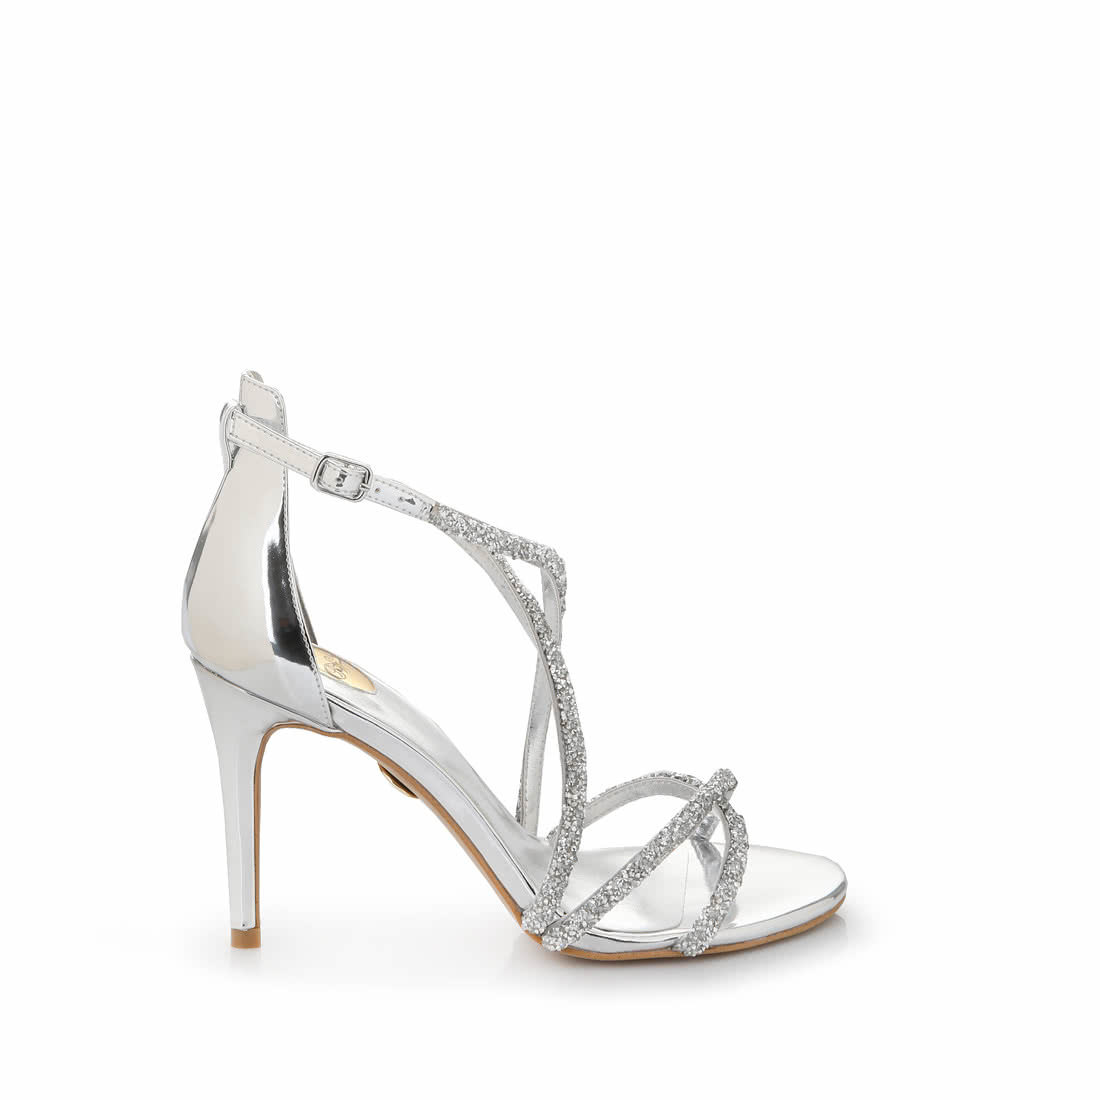 0fe1b700f57 Buffalo strappy high-heeled sandals in silver glitter look buy ...